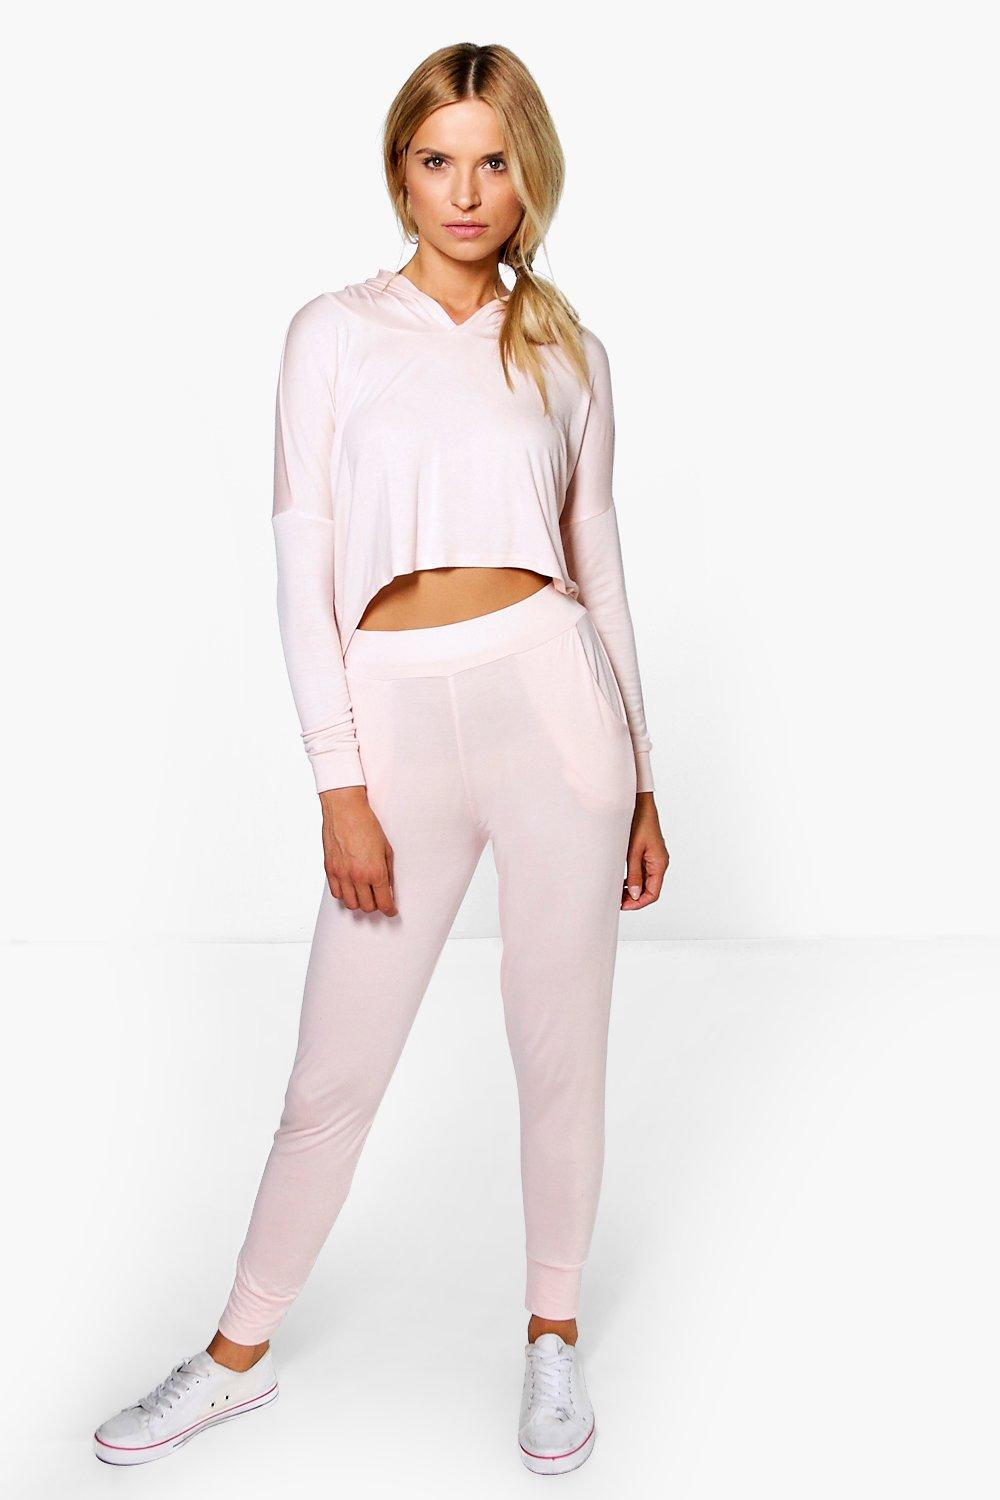 Gabriella Dip Hem Hooded Jogger Lounge Set